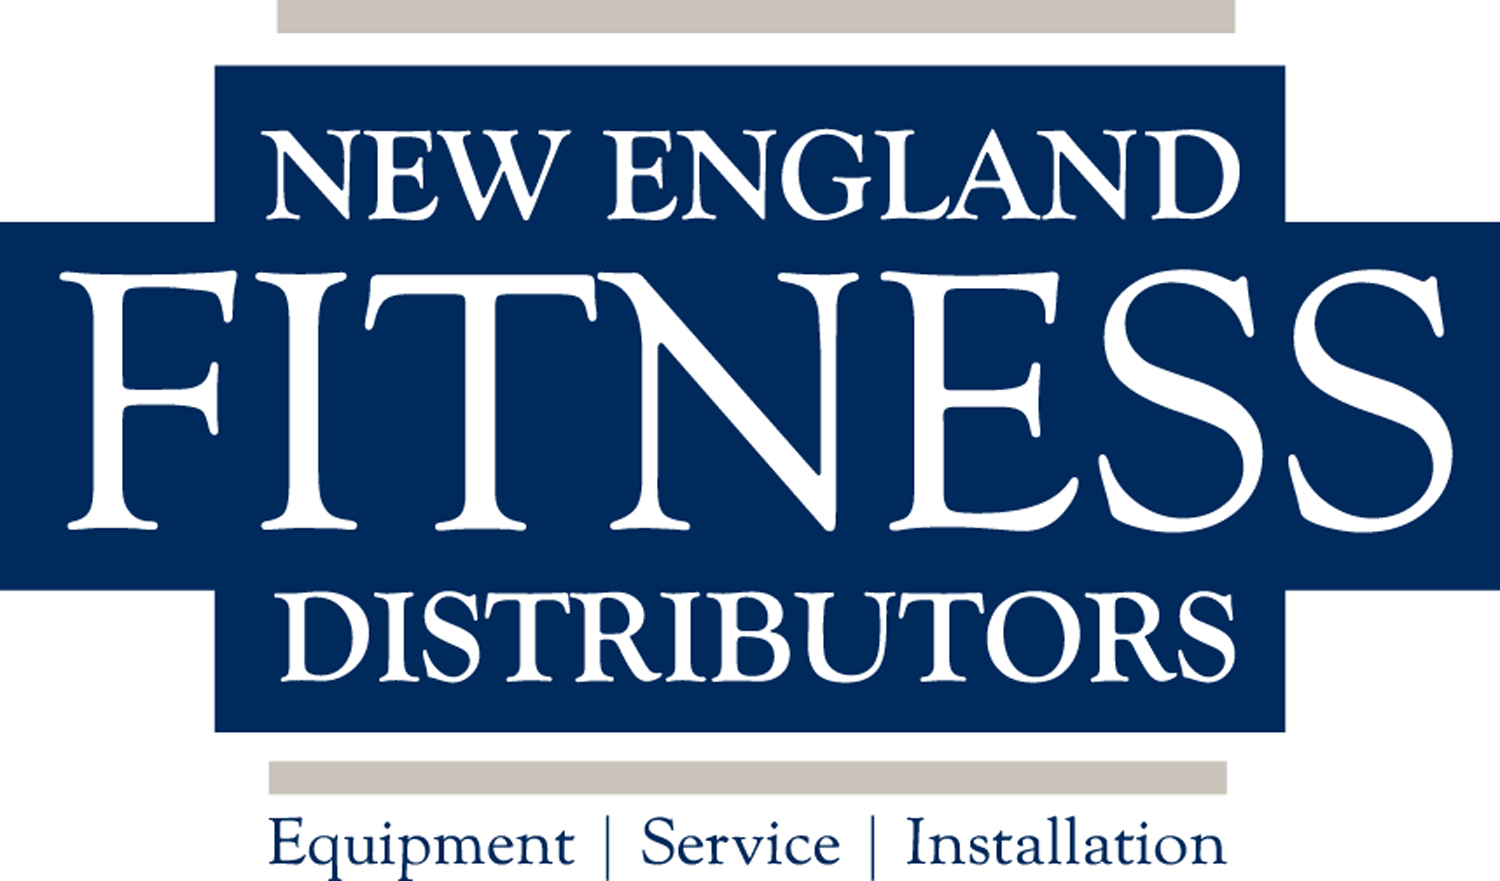 New England Fitness Distributors